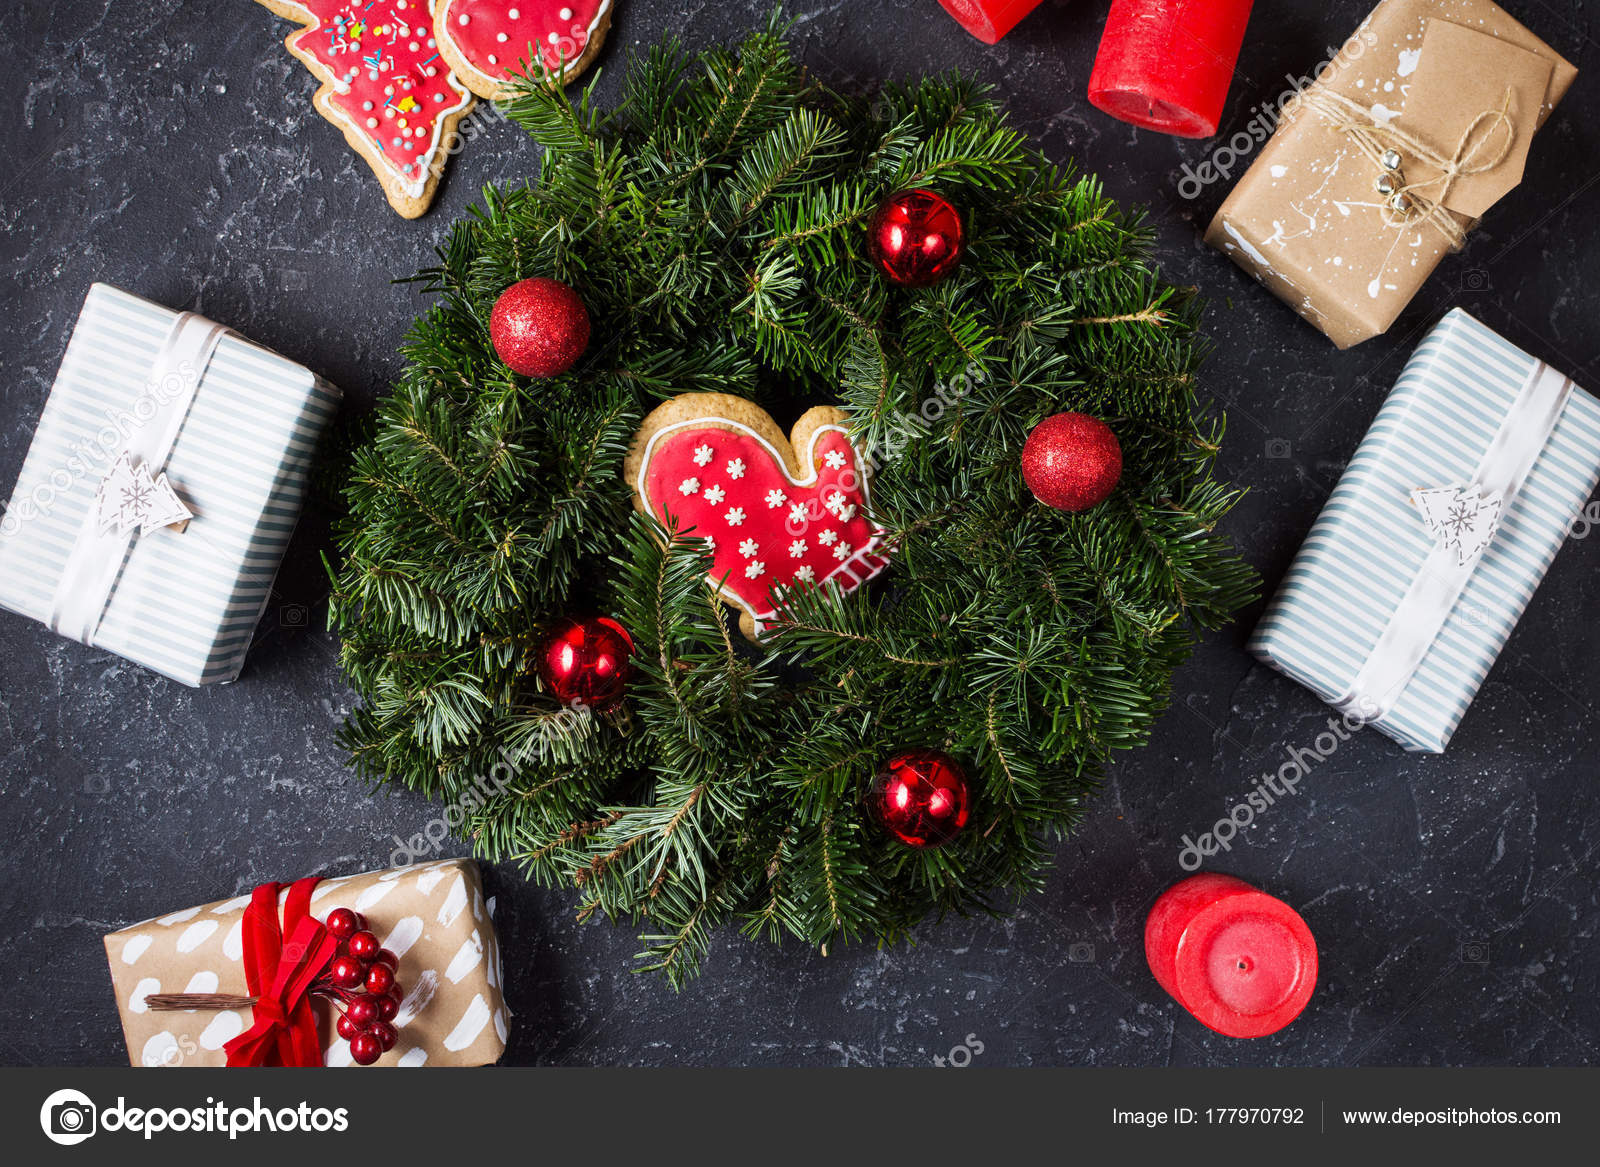 Christmas wreath and Christmas gifts on a black stone surface ...